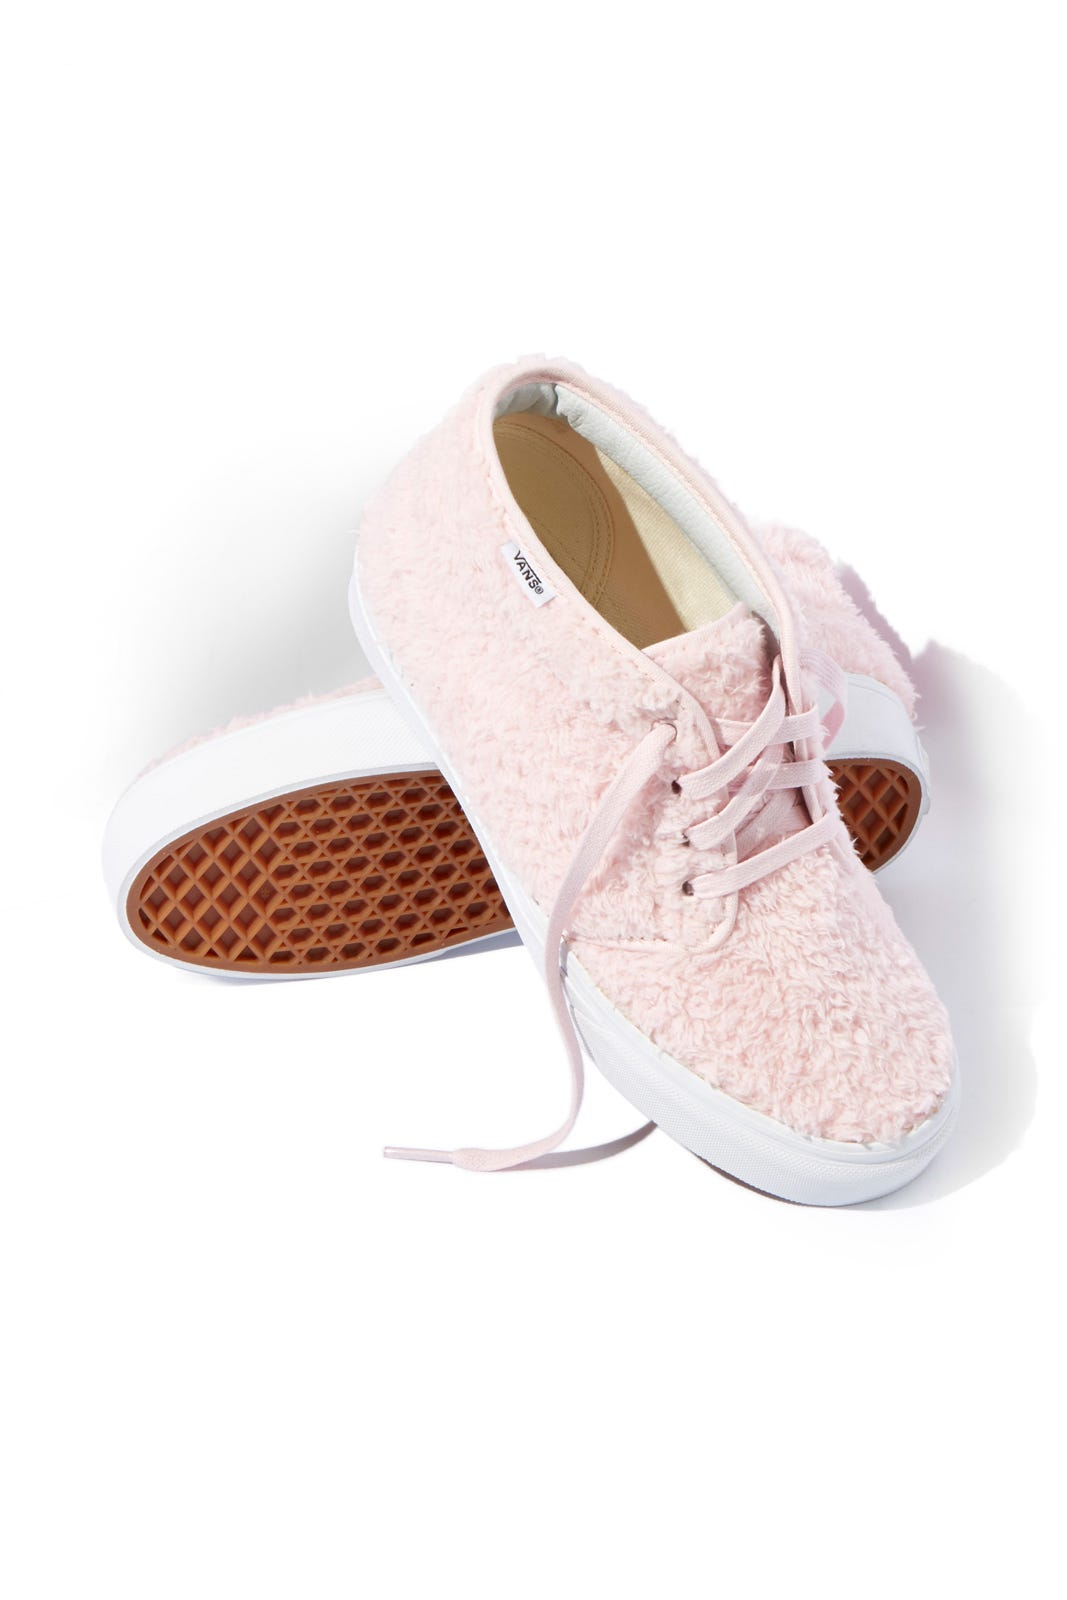 9f8937f6e6e1b3 Nordstrom Vans Pop Up Collaboration Shoes Clothing